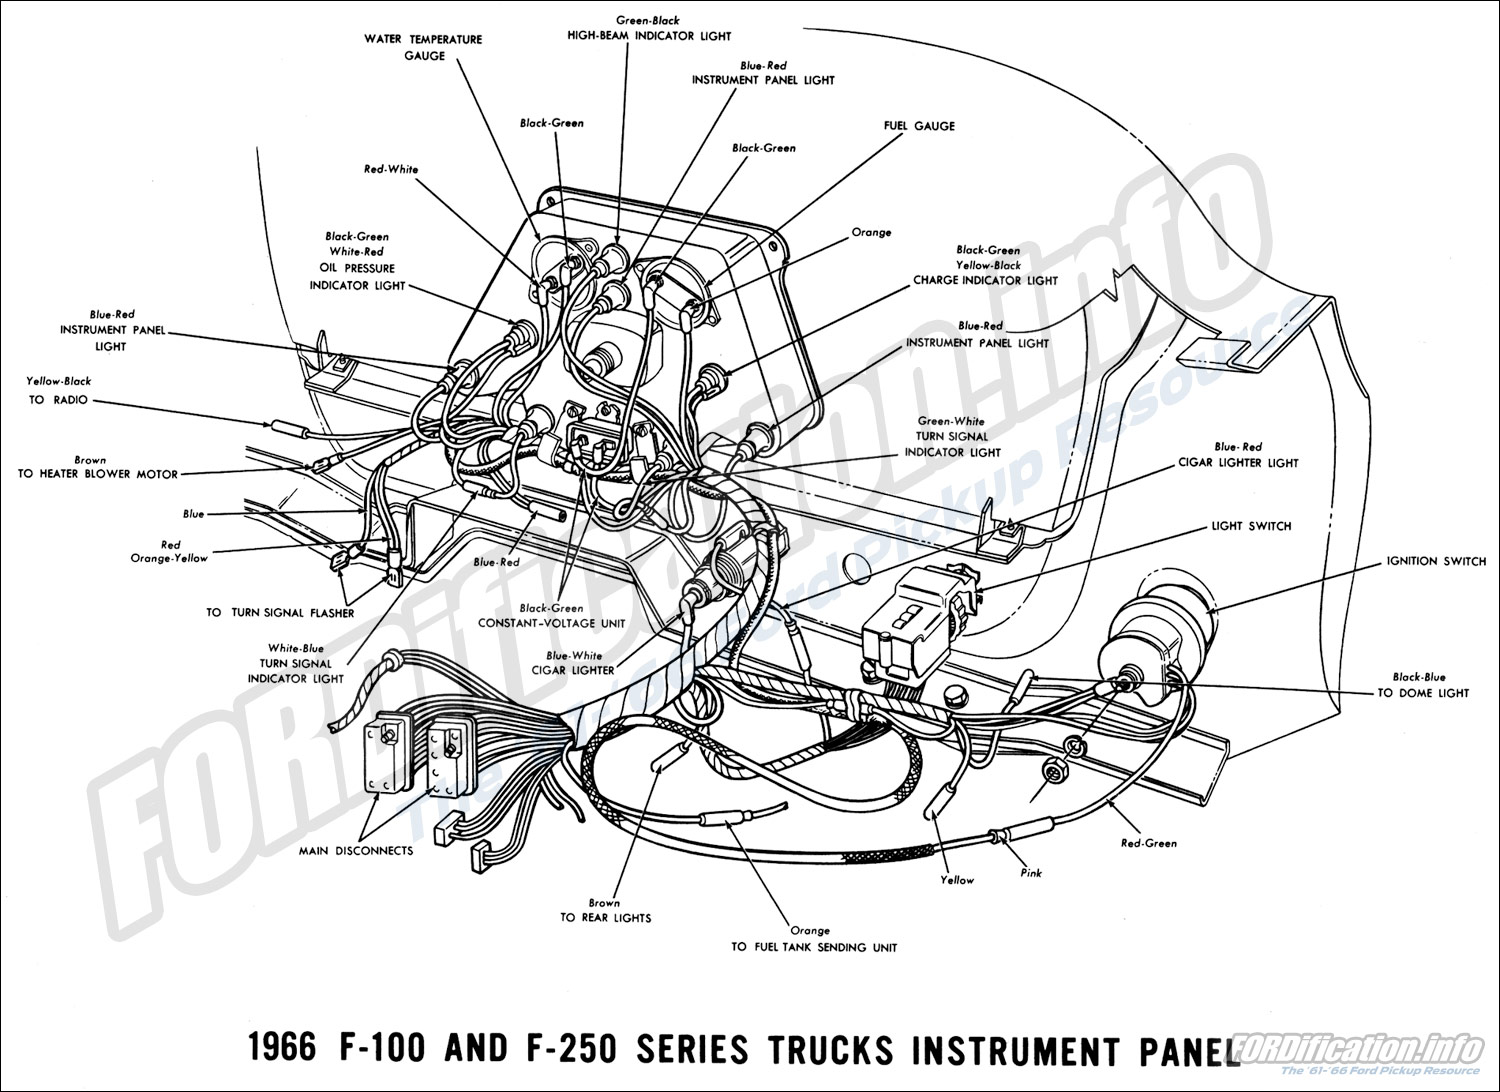 66instrumentpanel 1966 ford truck wiring diagrams fordification info the '61 '66 1966 ford truck wiring diagram at n-0.co